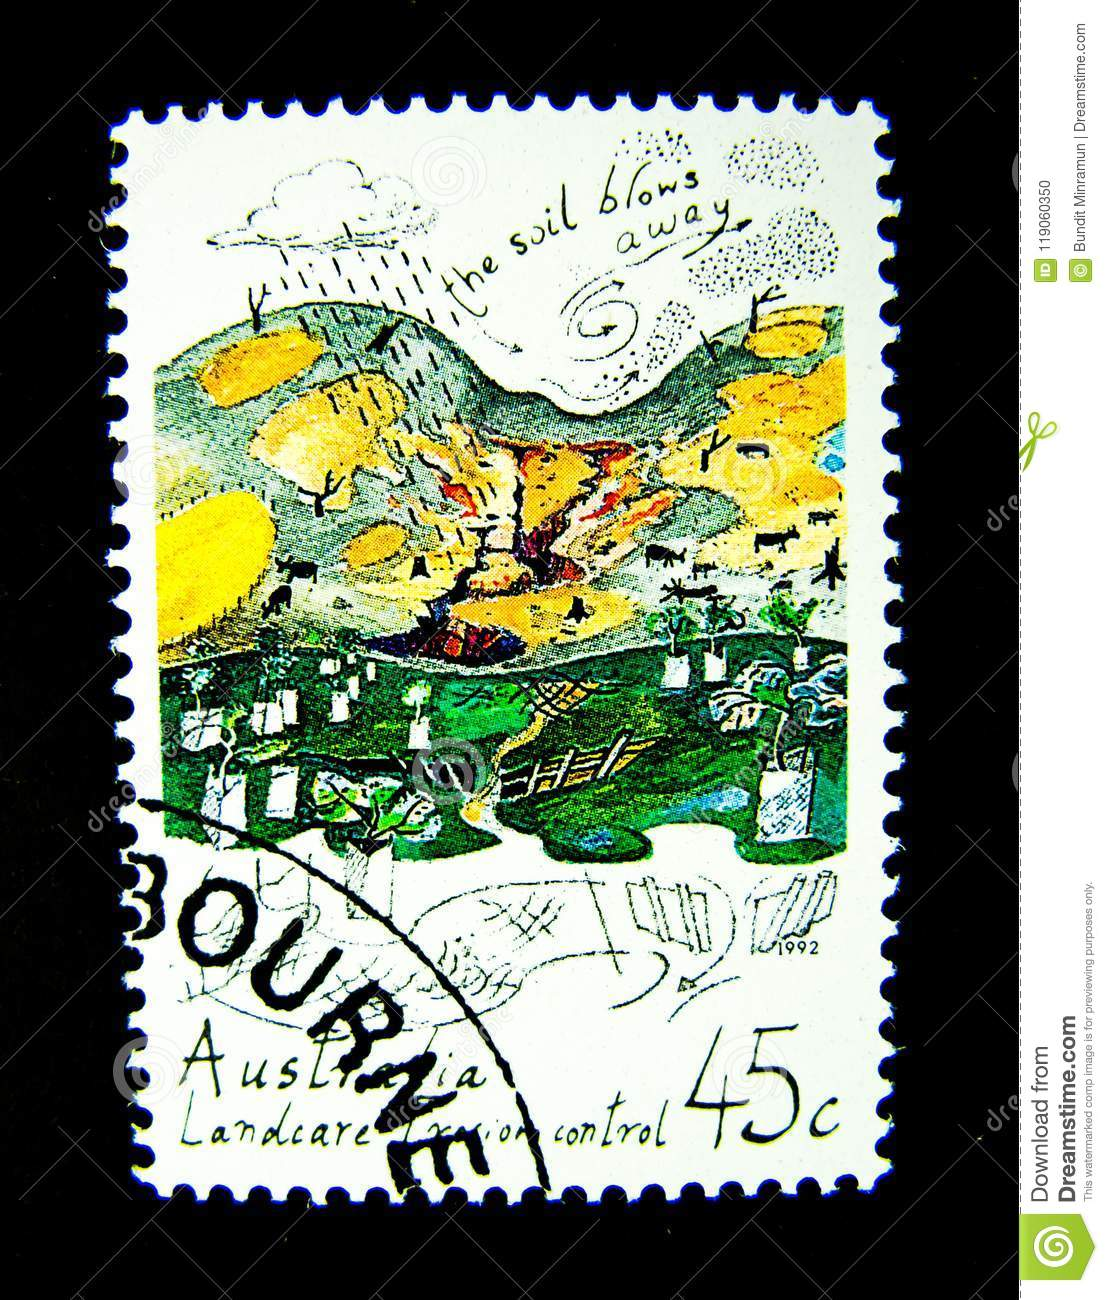 A Stamp Printed In Australia Shows An Image Of Landcare Erosion Control On Value At 45